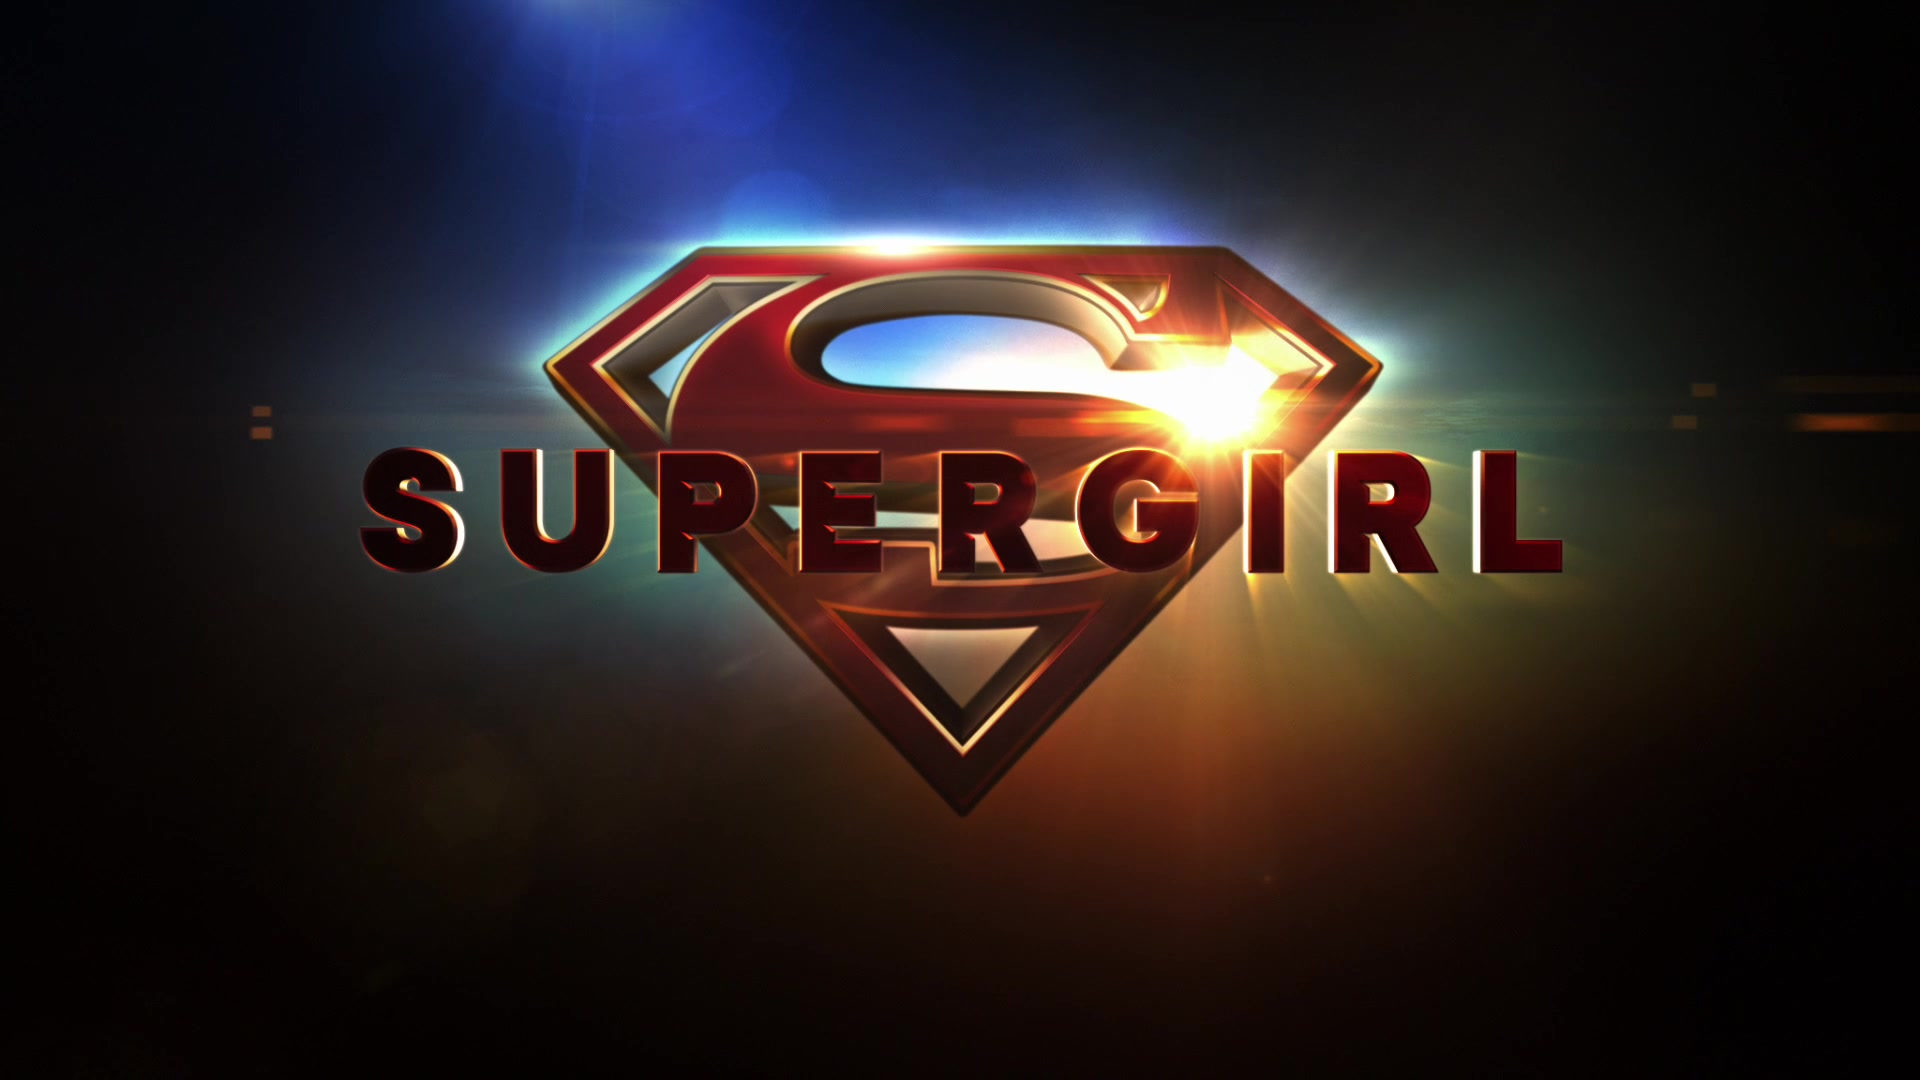 Supergirl (TV Series) Episode: American Dreamer